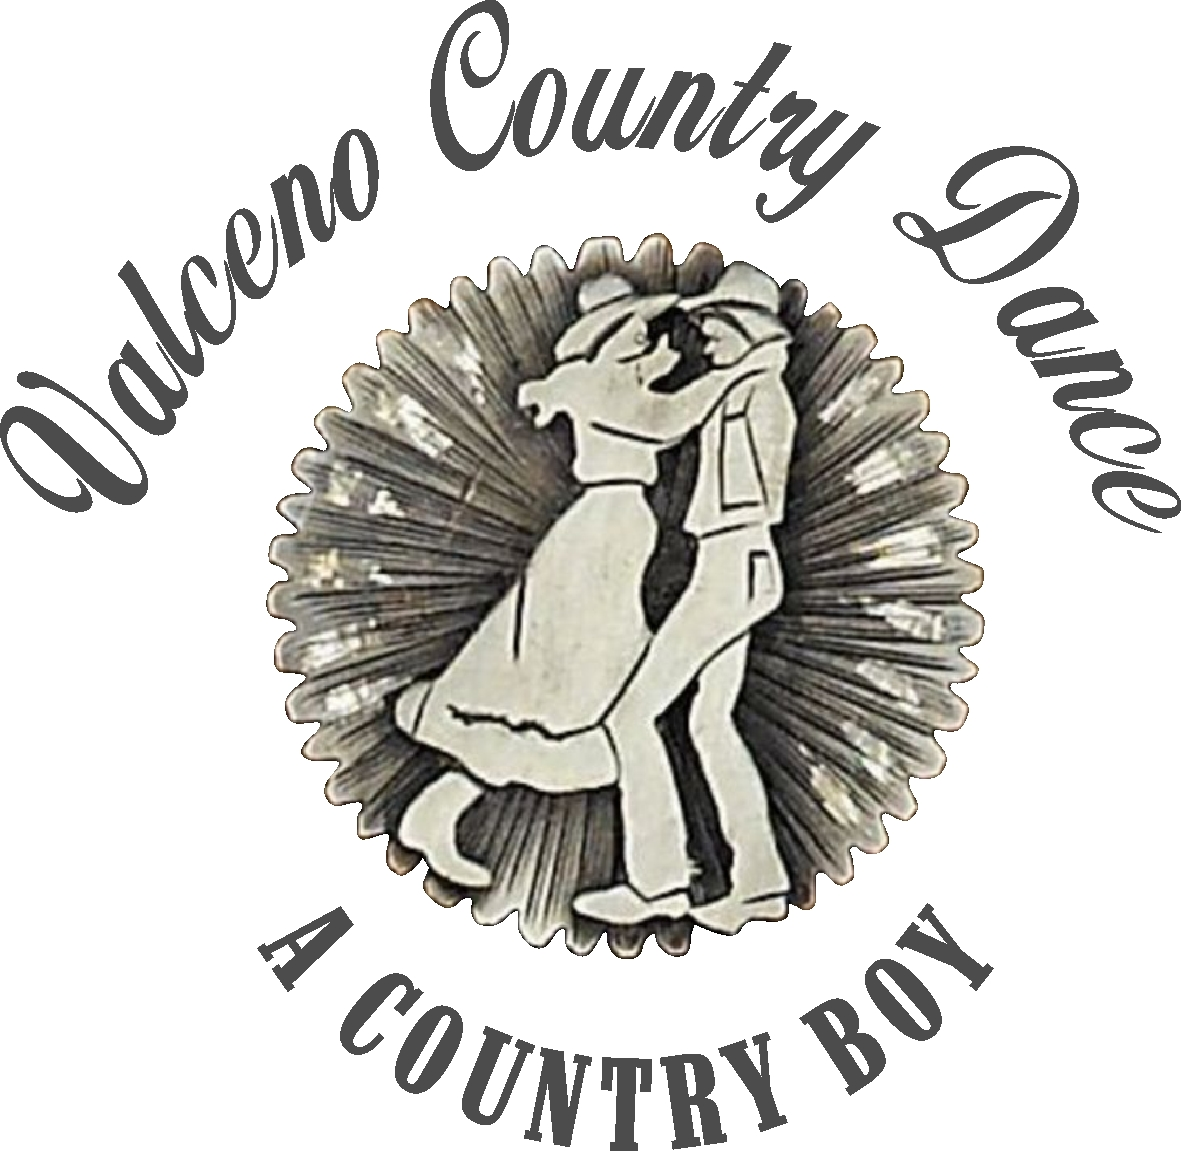 logo_Valceno_Country_Dance_2010.jpg